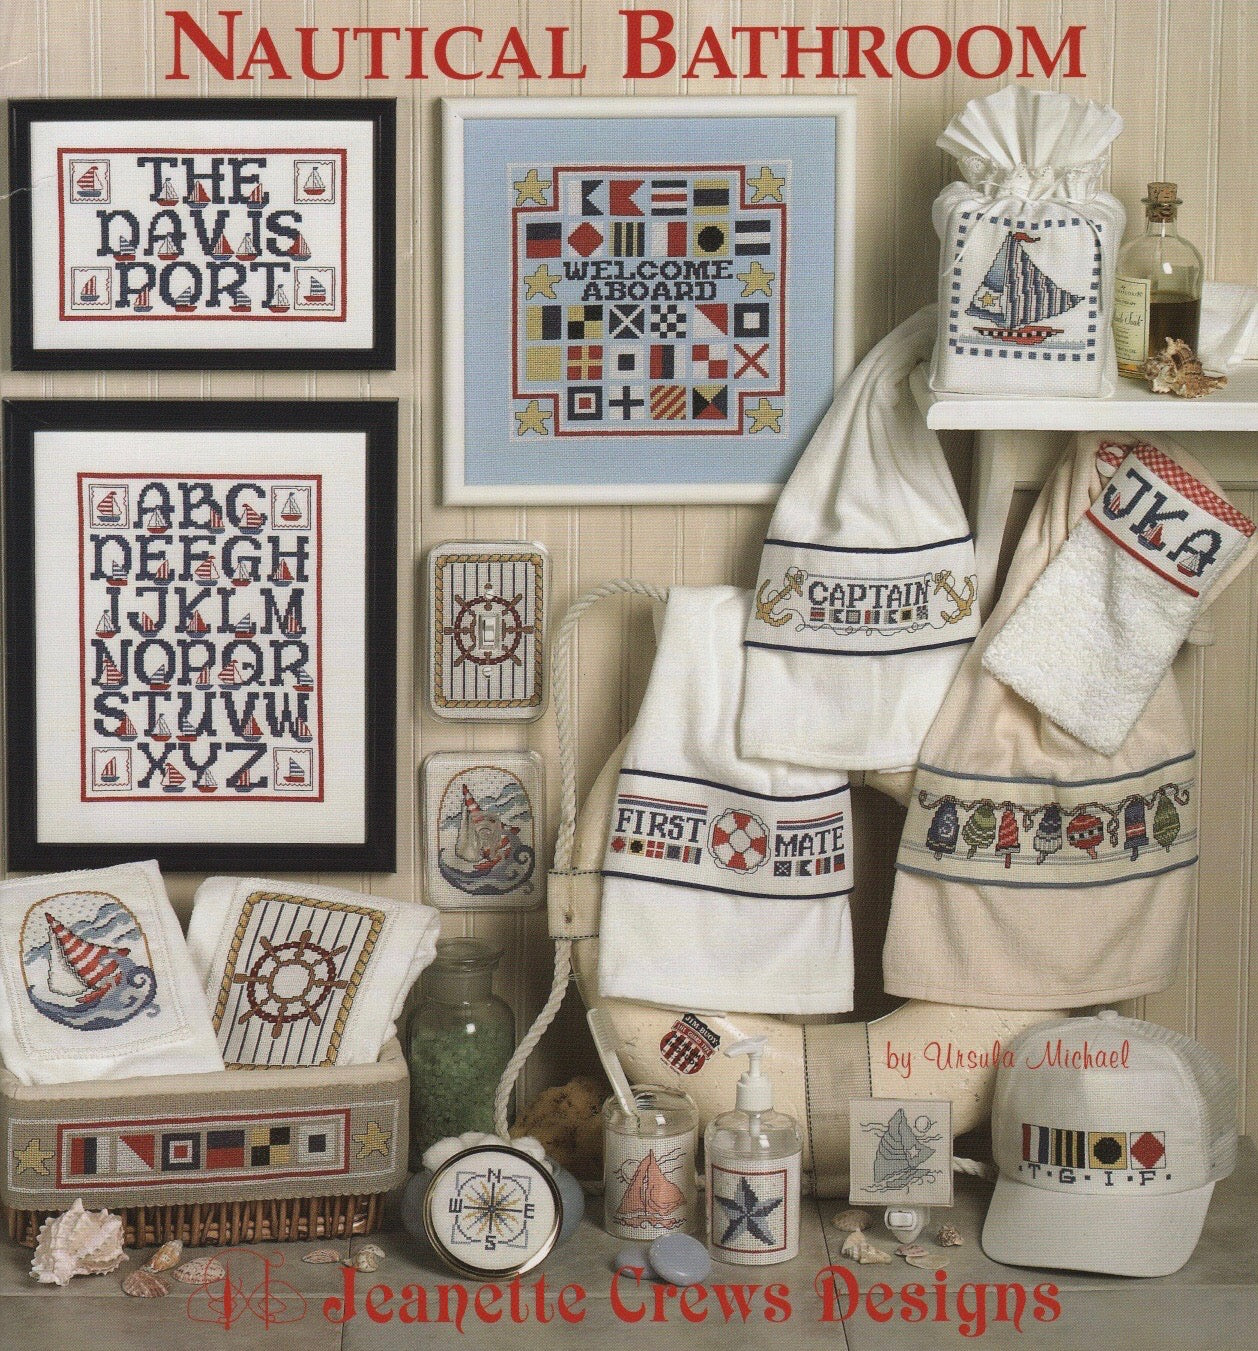 TGIF! - Nautical Bathroom